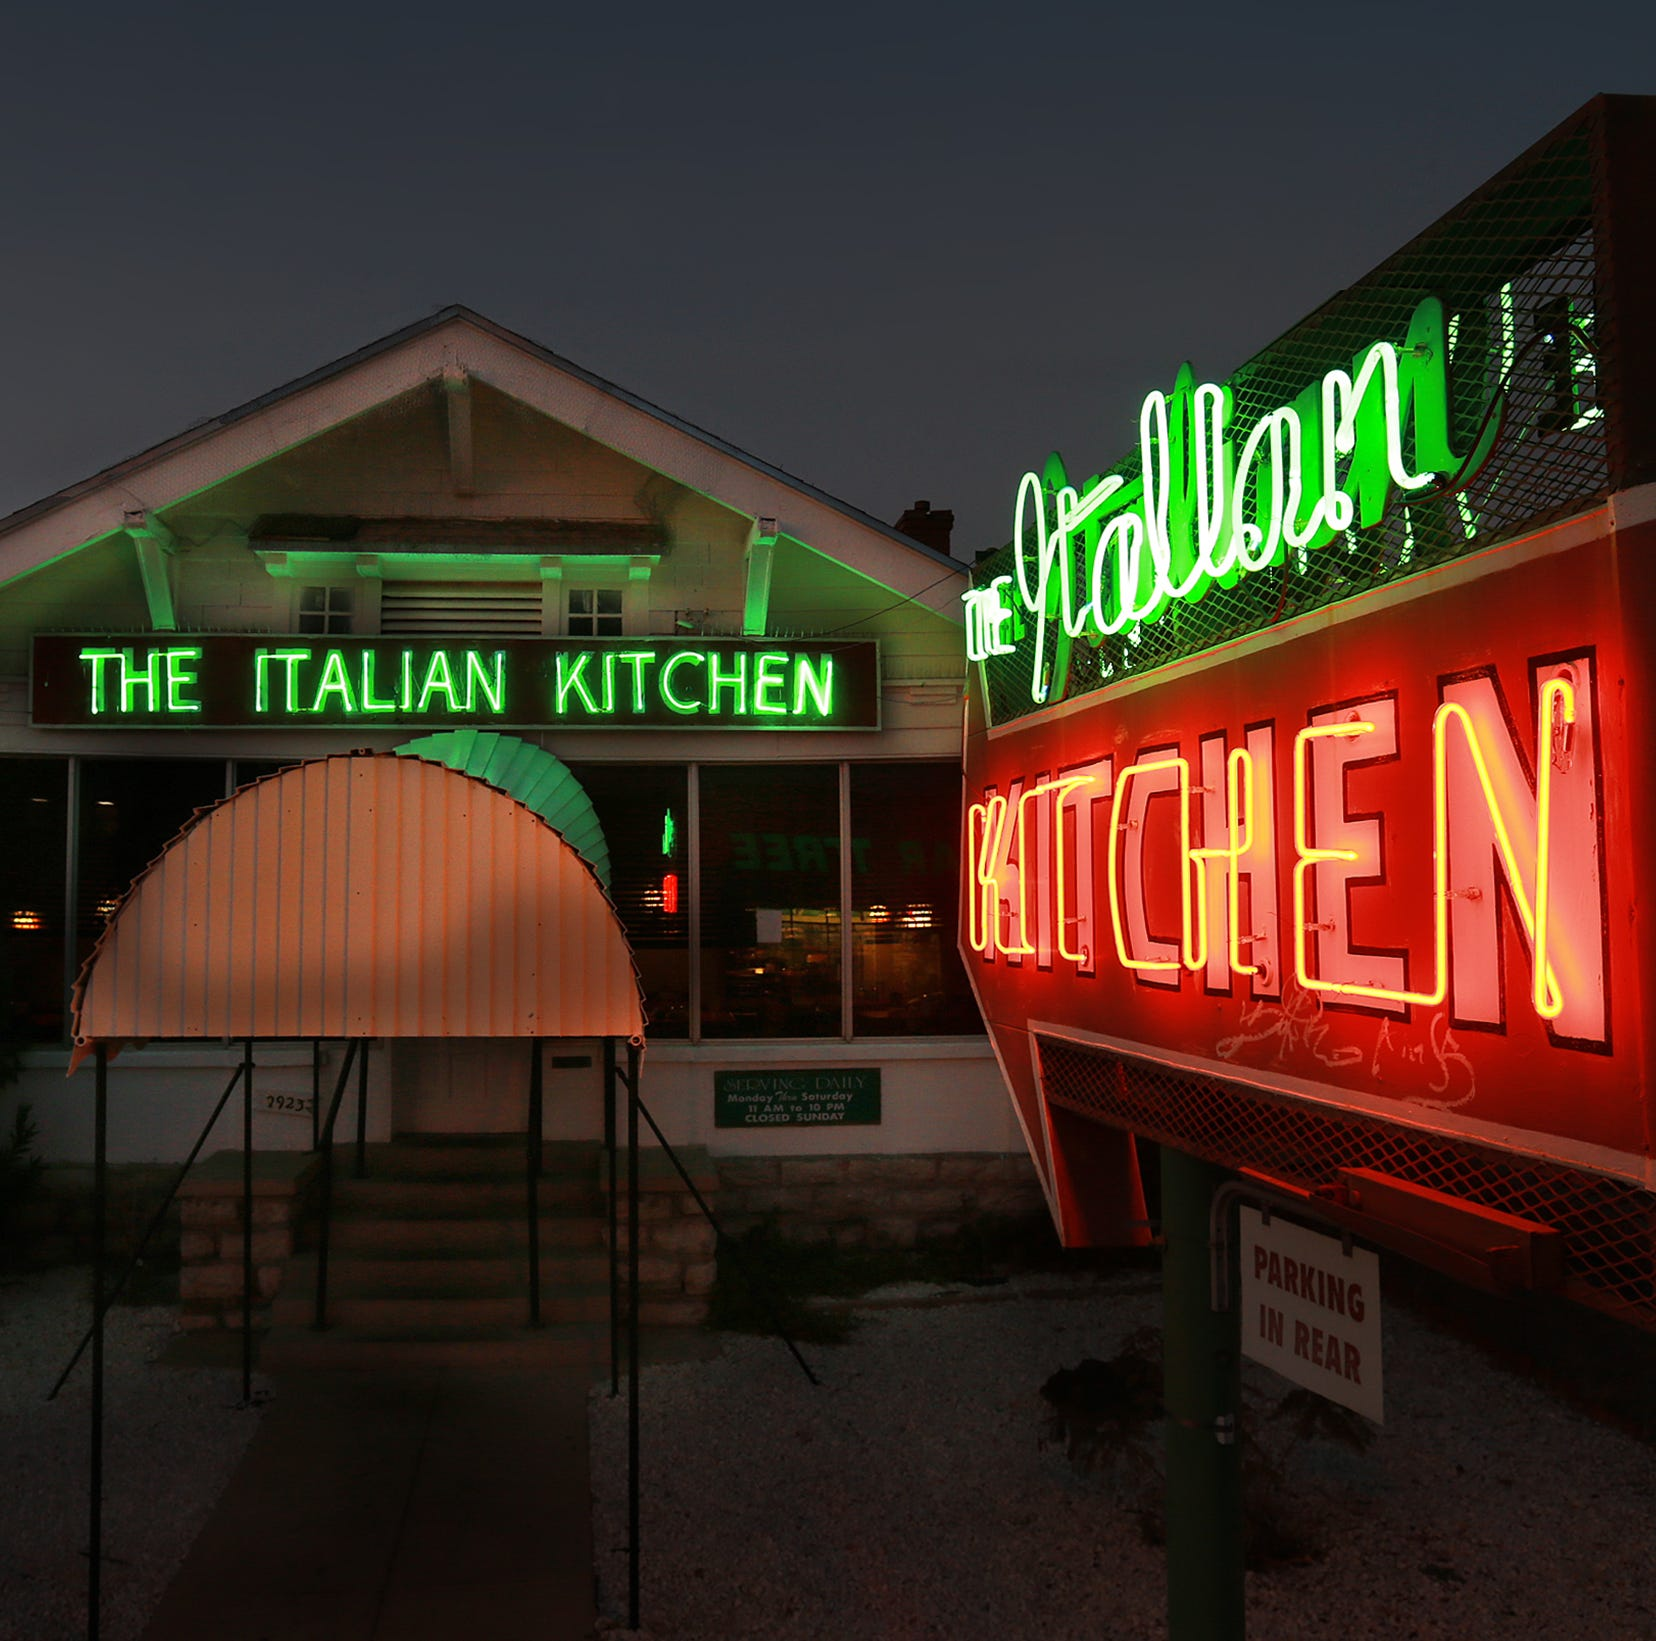 Longtime family-owned Italian Kitchen in Central El Paso celebrates 70th anniversary